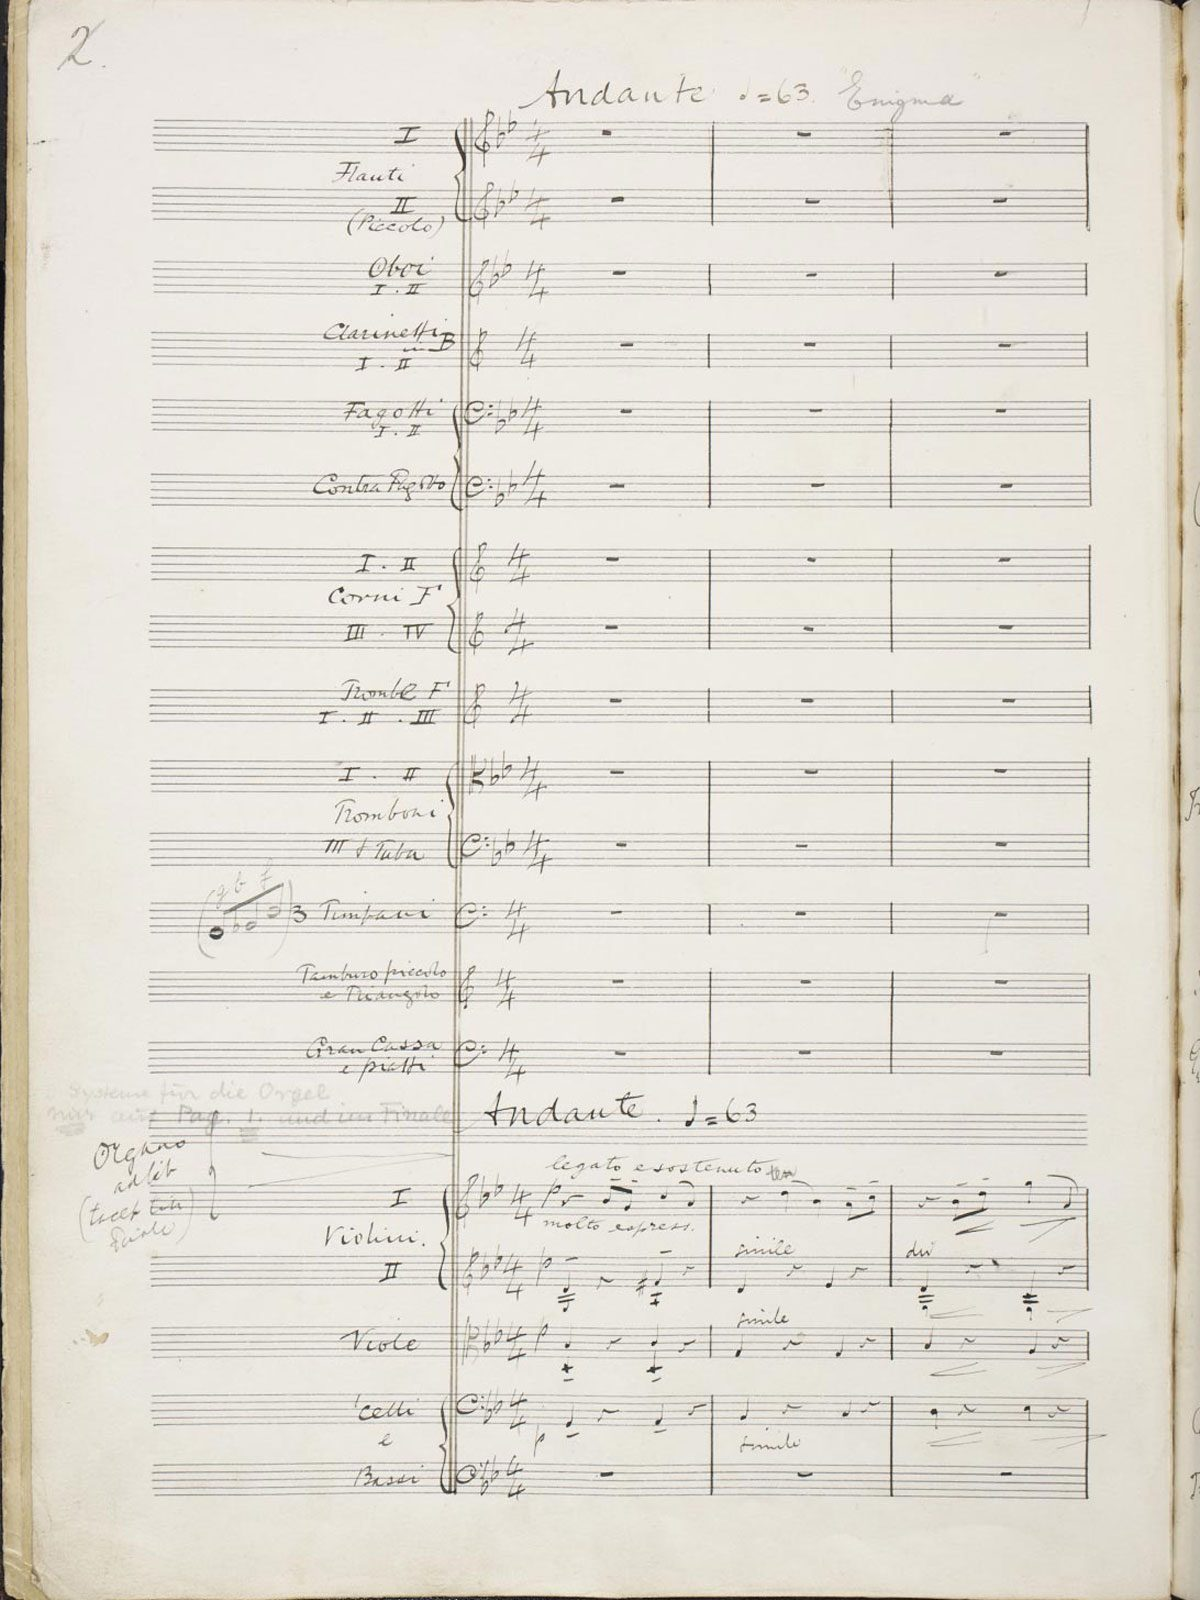 A Manuscript page from Elgar's Enigma Variations (1898/9)